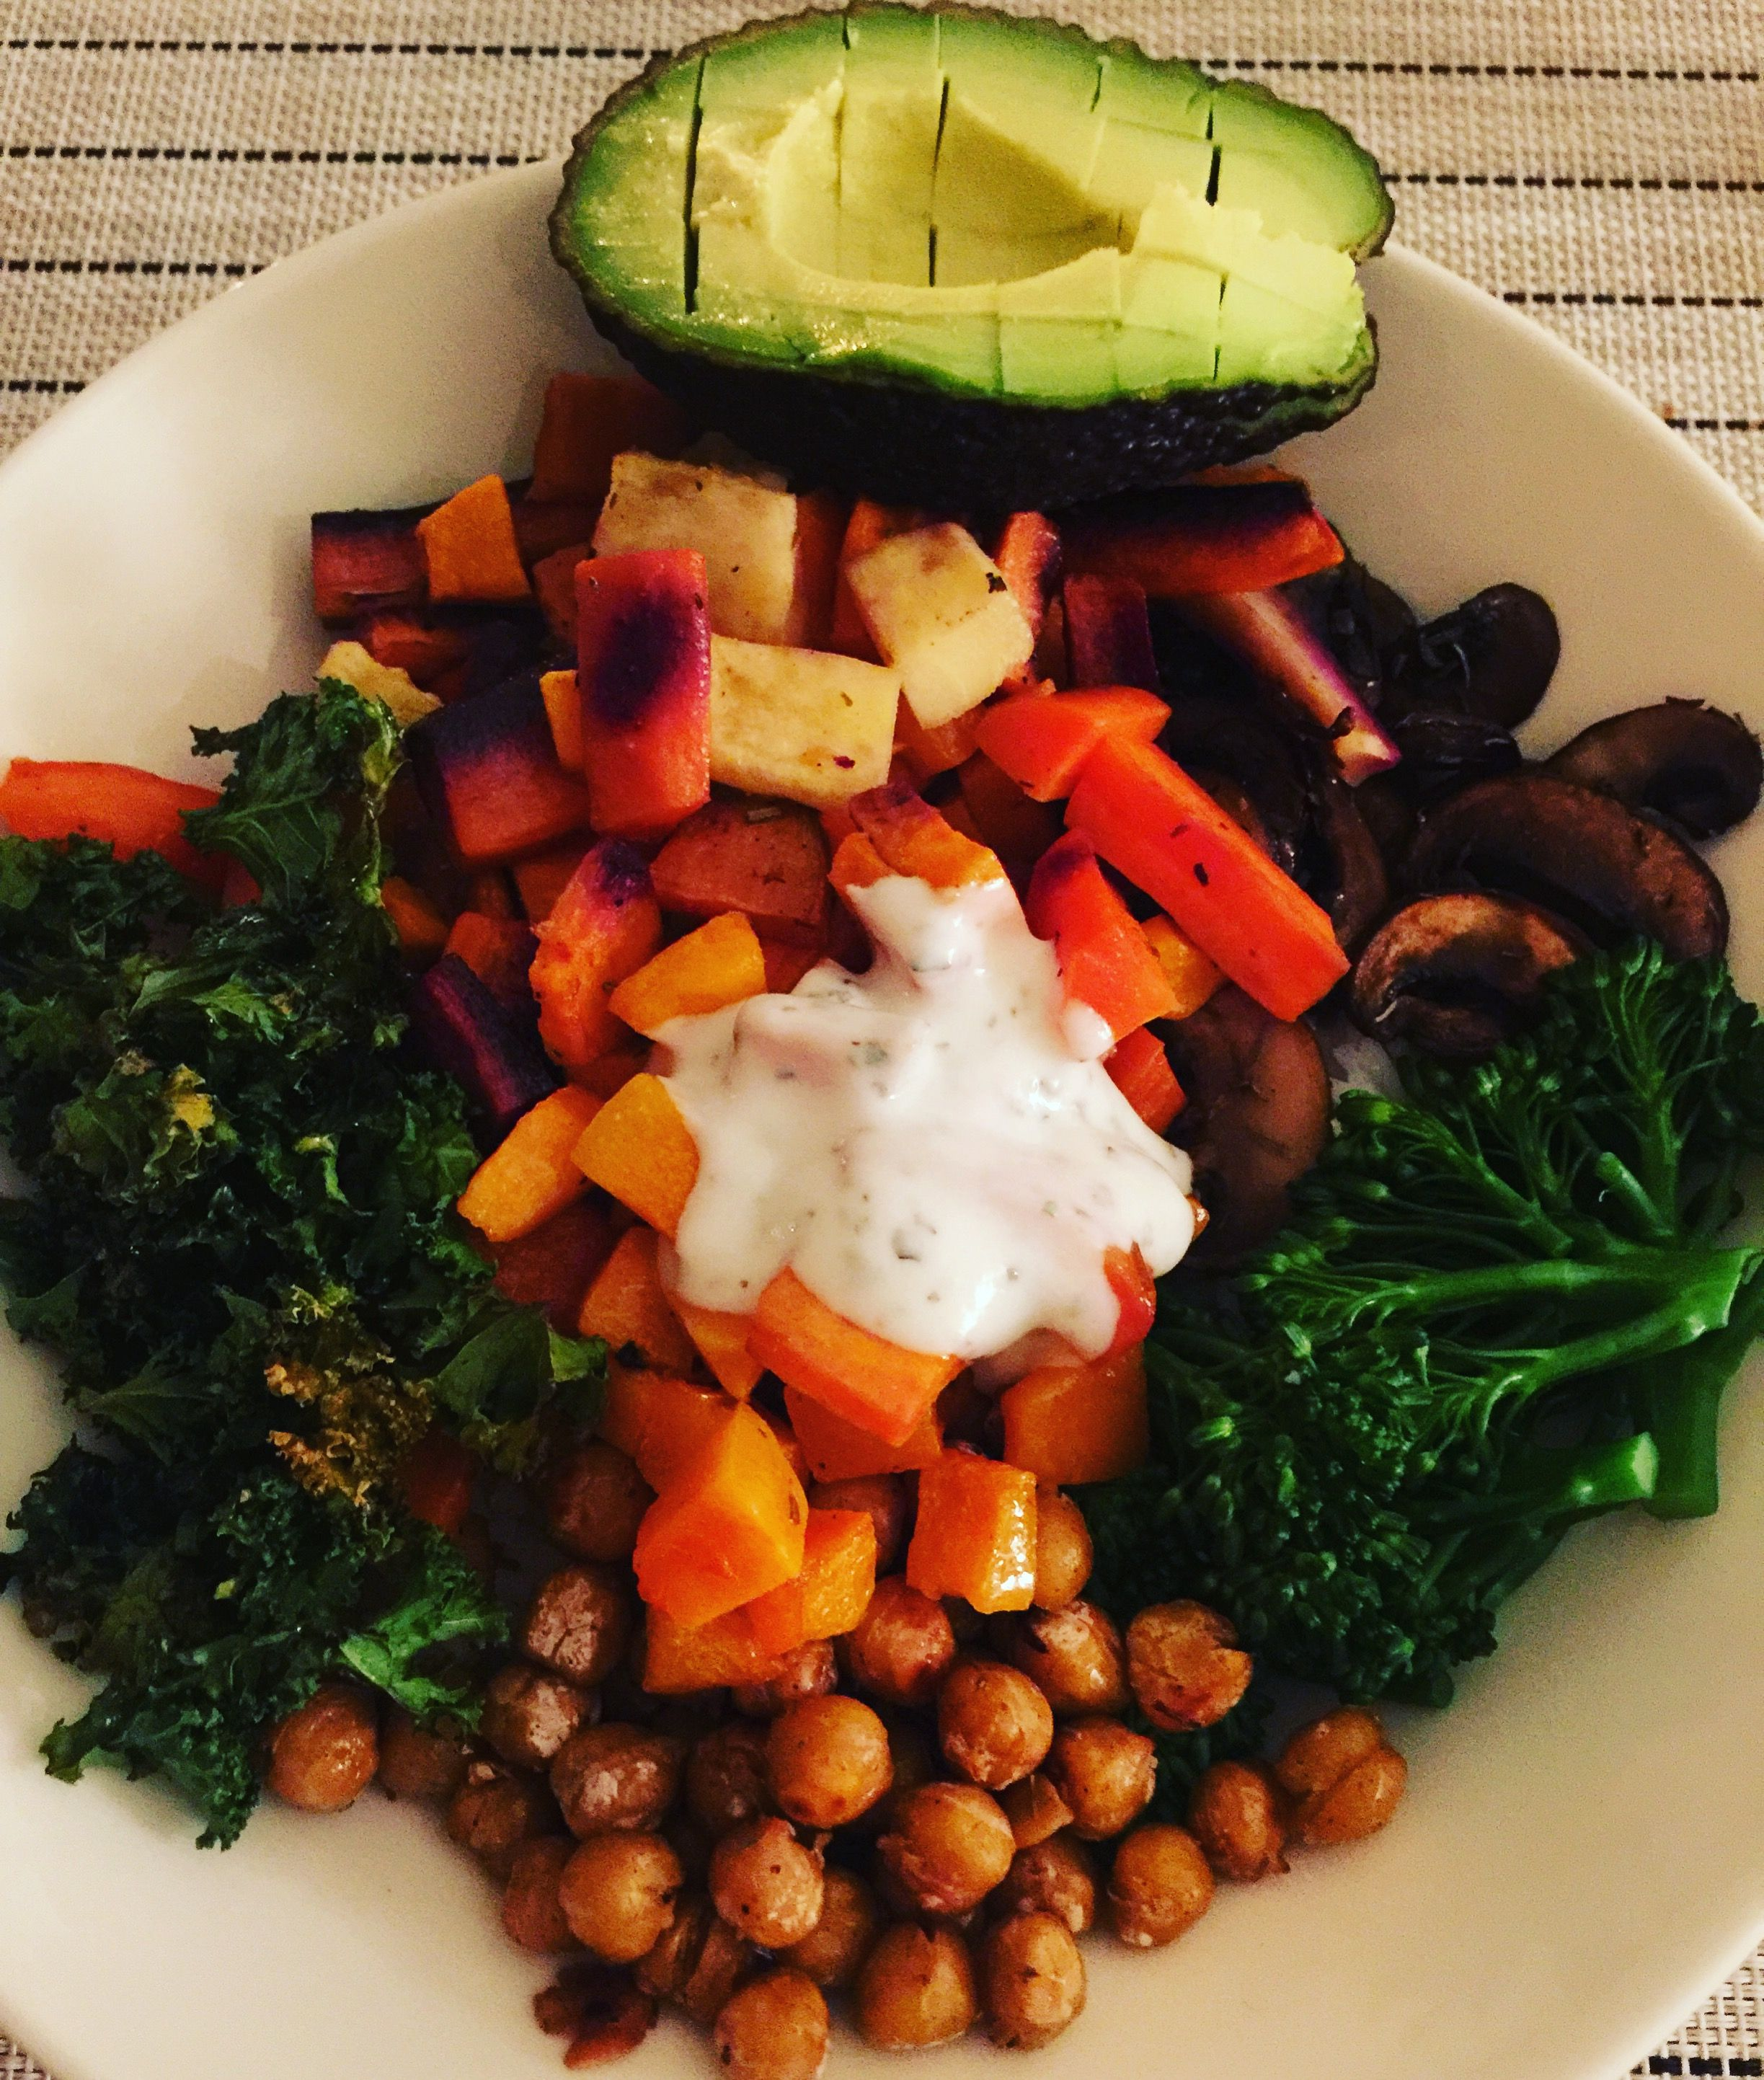 Buddha Bowl - Easy weeknight dinner, combine your bowl by choosing your grain (here; brown rice), protein (here; chickpeas), veg (here; what I had in the fridge, broccoli, carrots, avocado, mushrooom and kale). Then add a sauce of your choosing (here; minty yogurt dip). And voila, you're done!